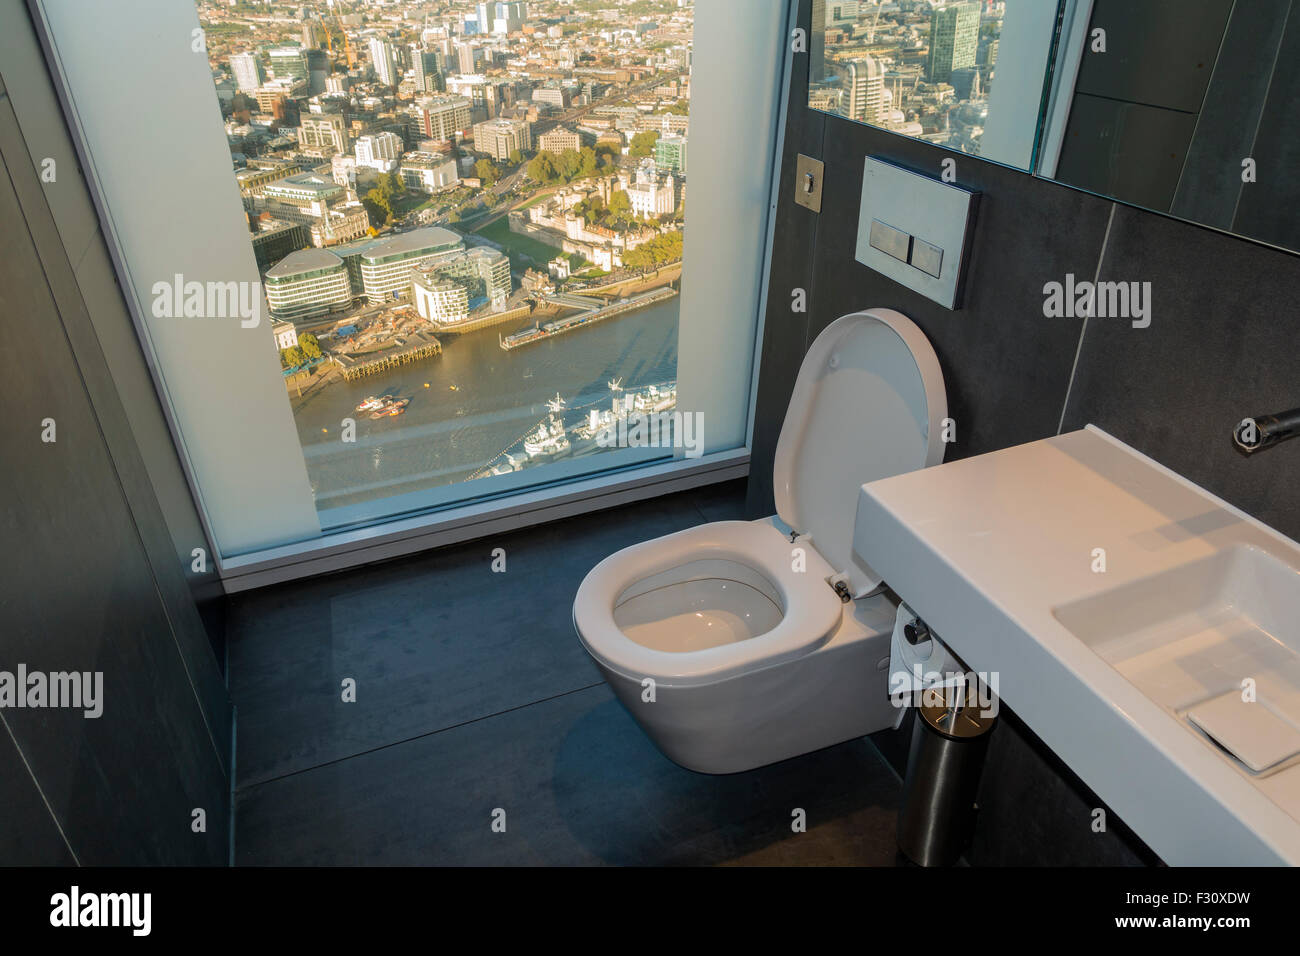 The Shard Toilet at the Top of The Shard  Loo with a View over London - Stock Image